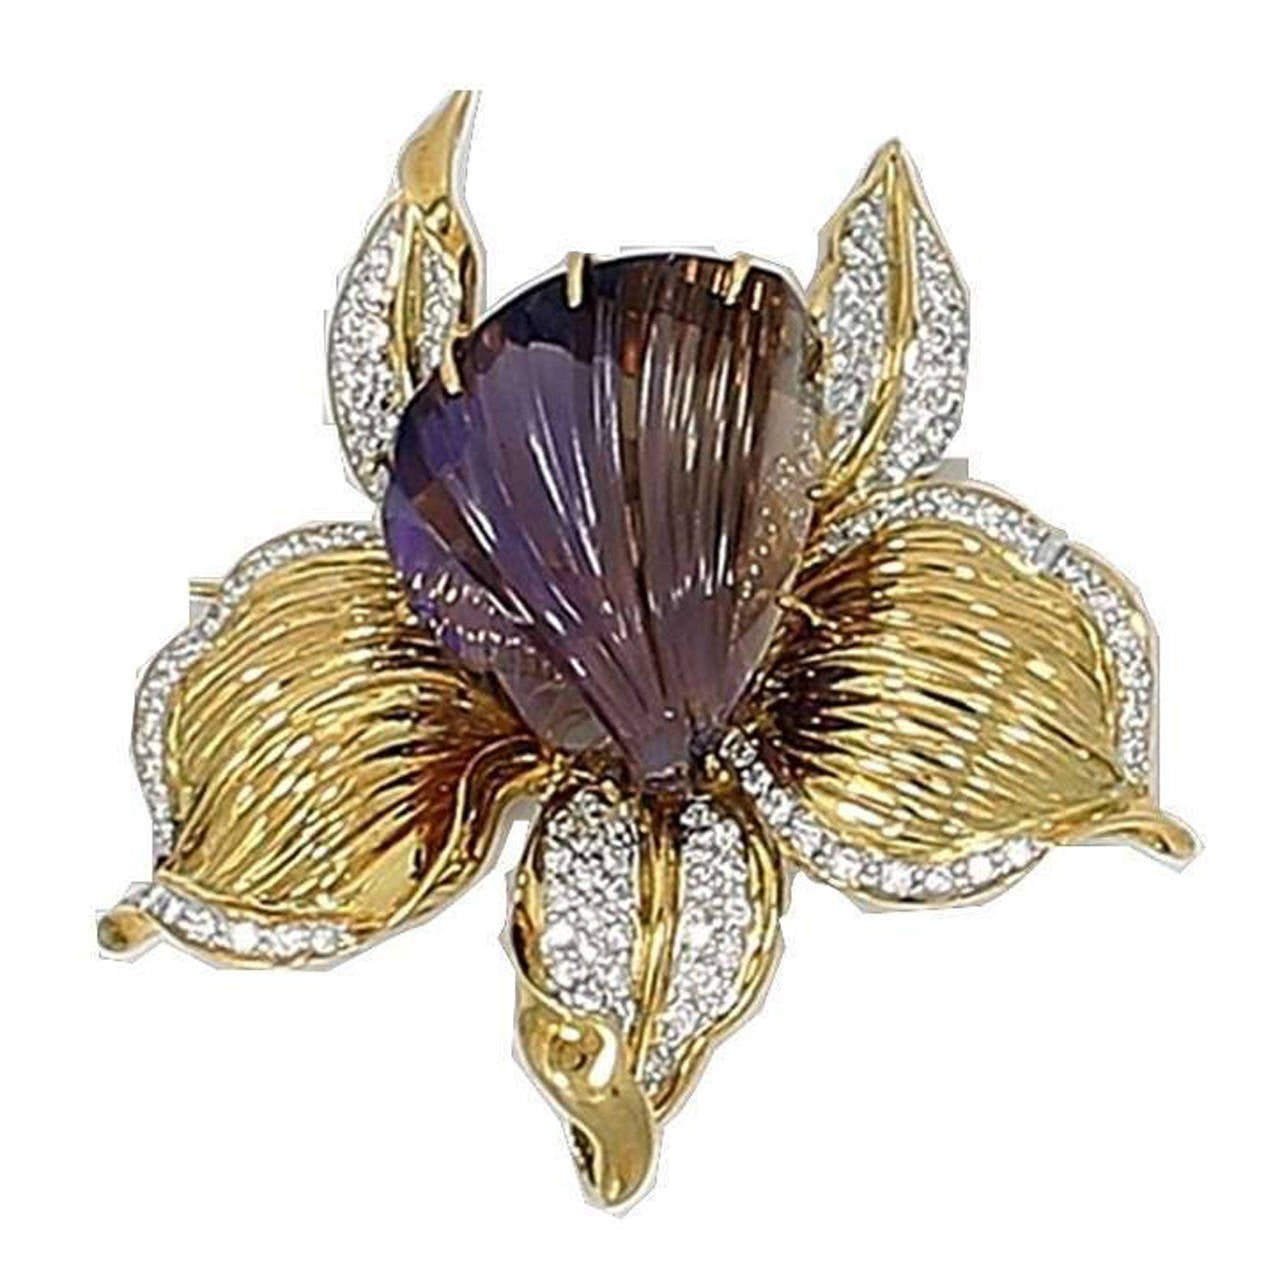 lever j sapphire l diamond sale jewelry for and earrings orchid id back at